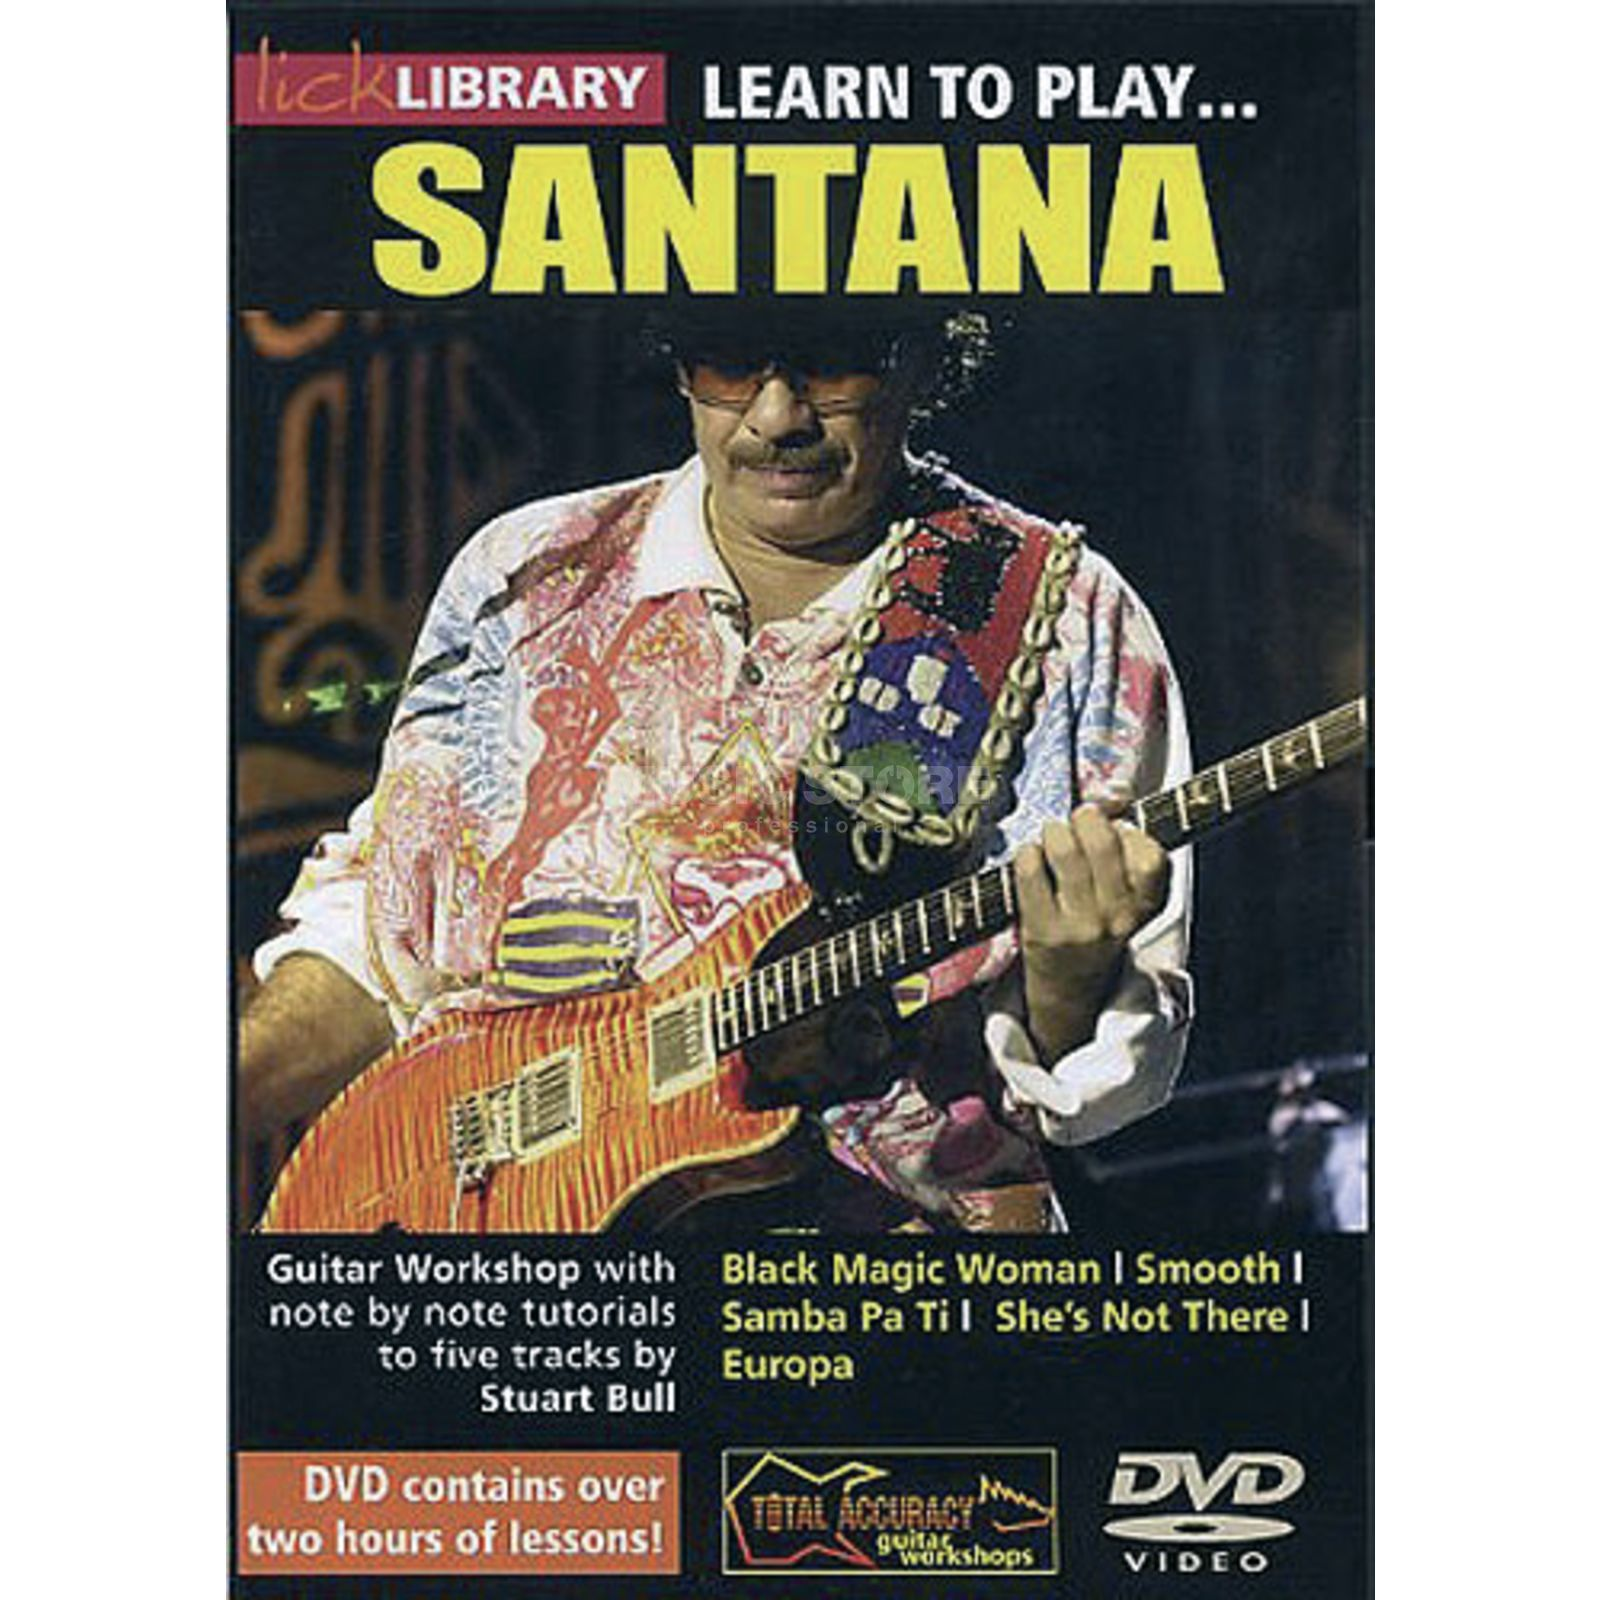 Roadrock International Lick library - Santana Learn to play (Guitar), DVD Produktbillede